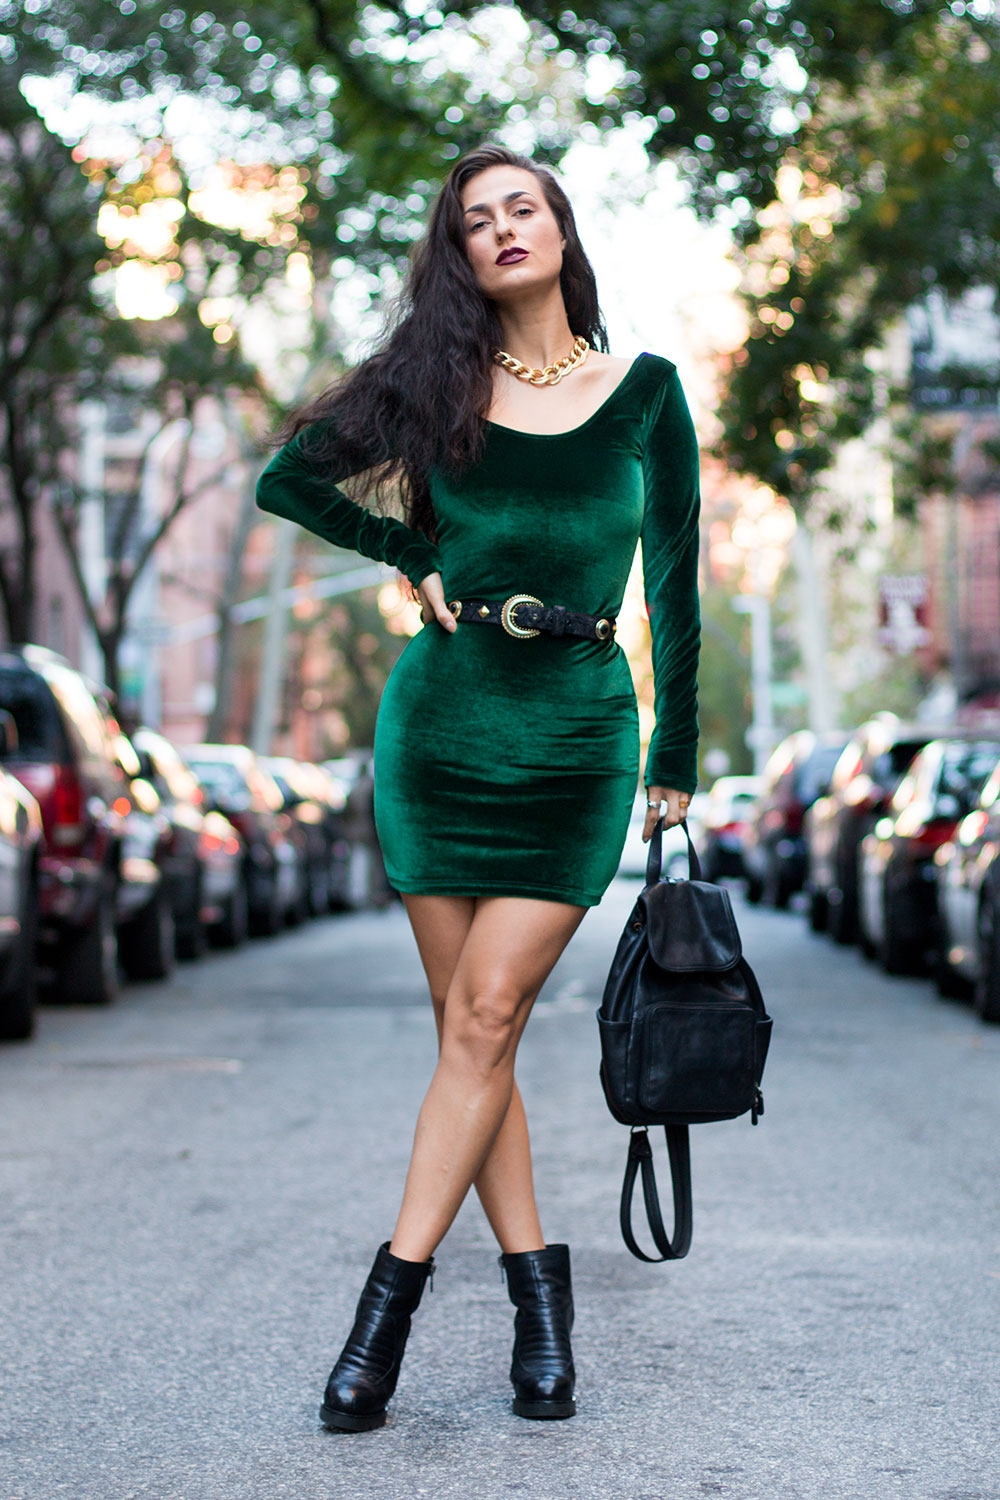 Do The Hotpants Dana Suchow Green Velvet Bodycon Dress Minidress Curvy Woman Long Hairstyle Wavy Hair IMG_3422